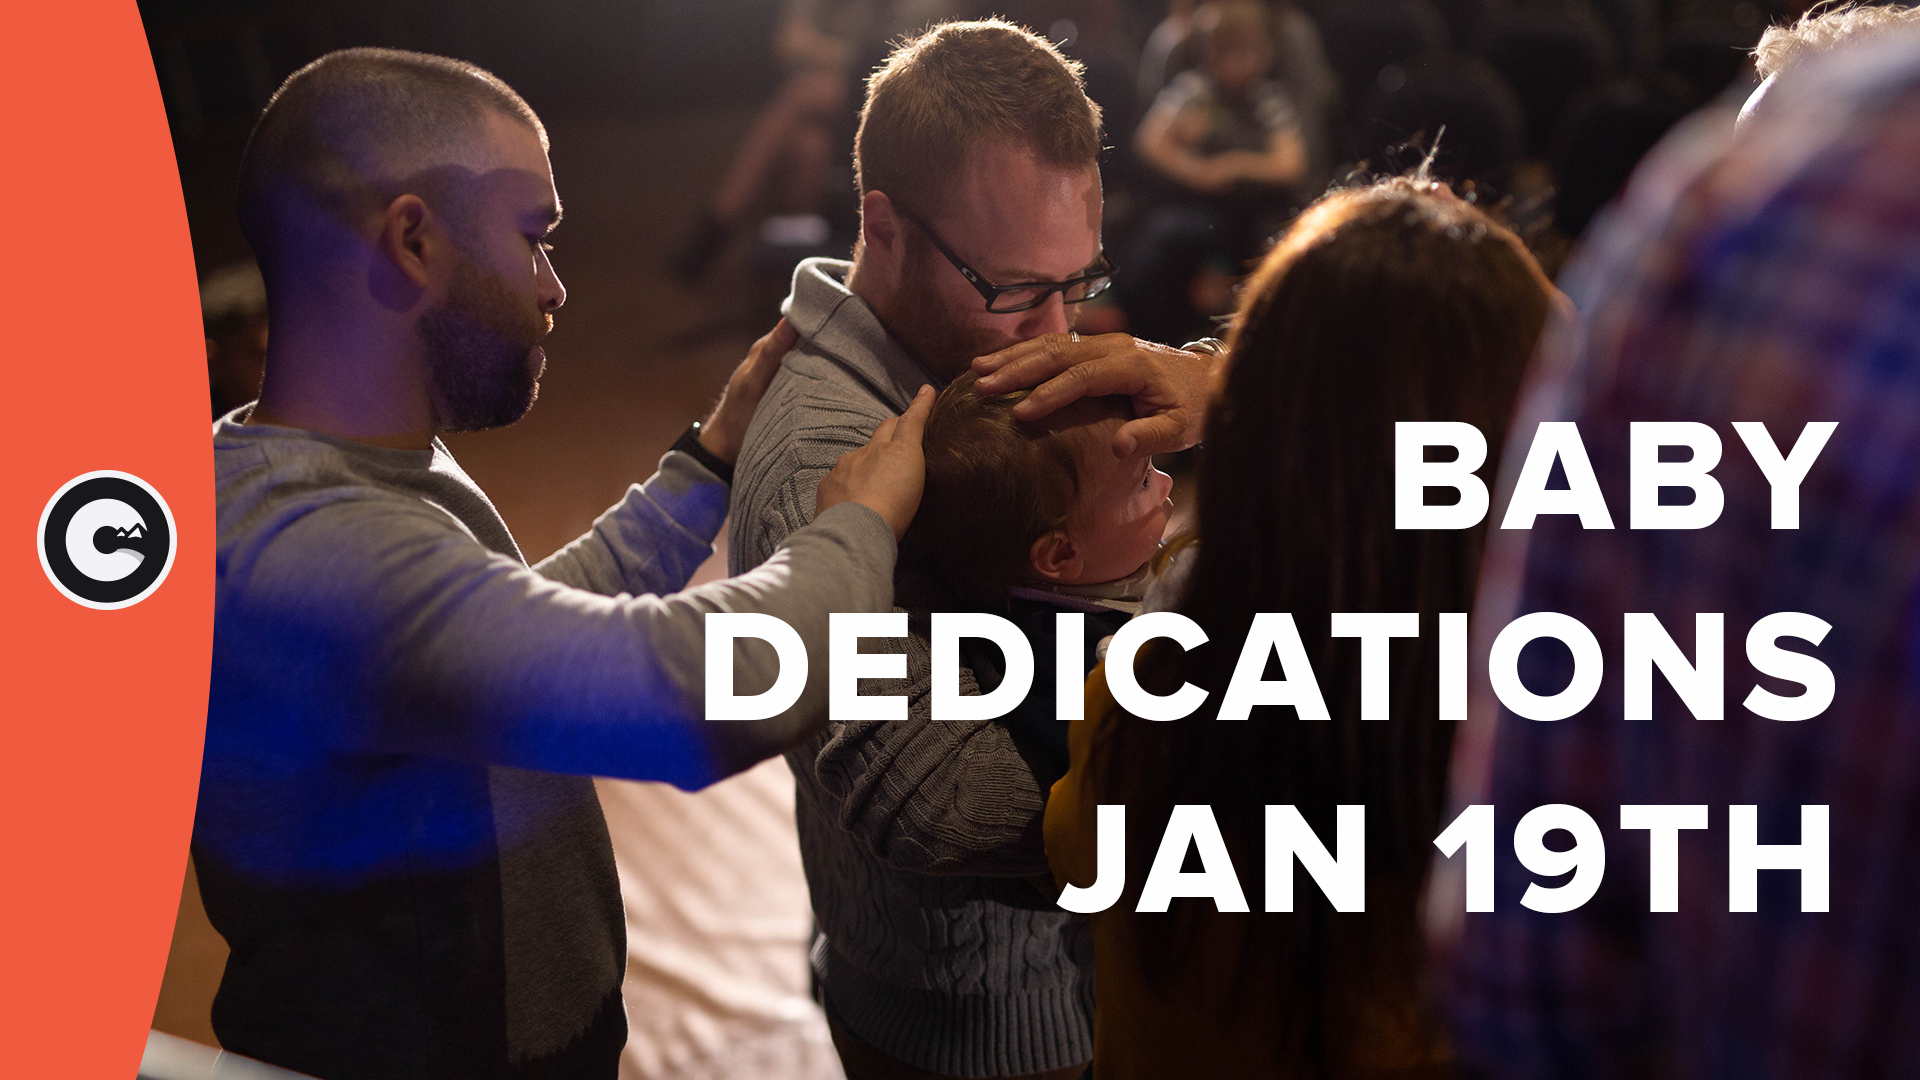 Parent Baby Dedications - Jan 19th 2020